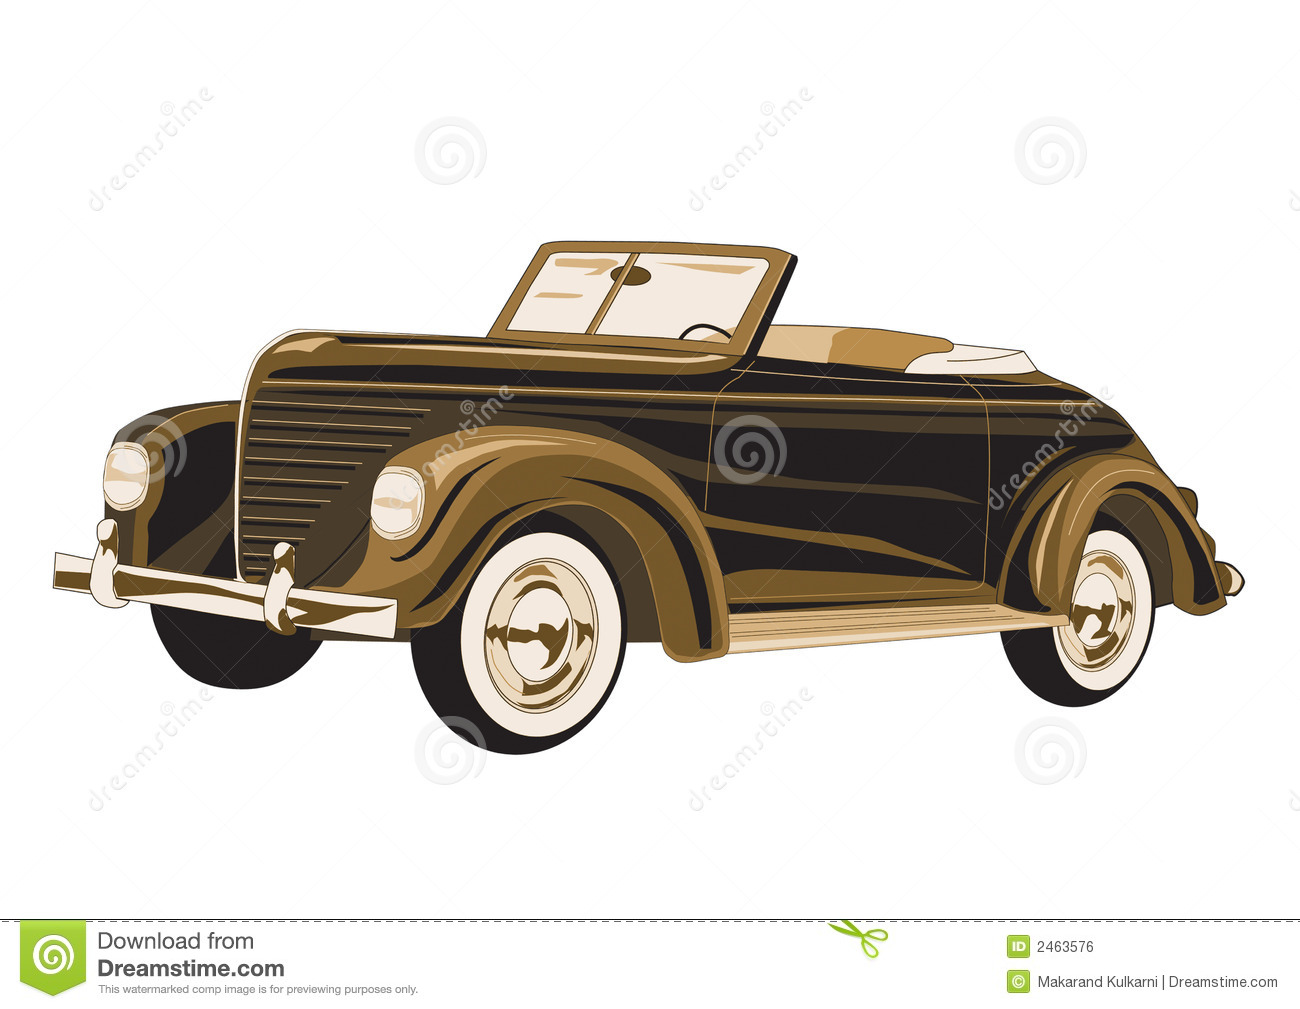 Antique Car poster stock illustration. Illustration of classic - 2463576